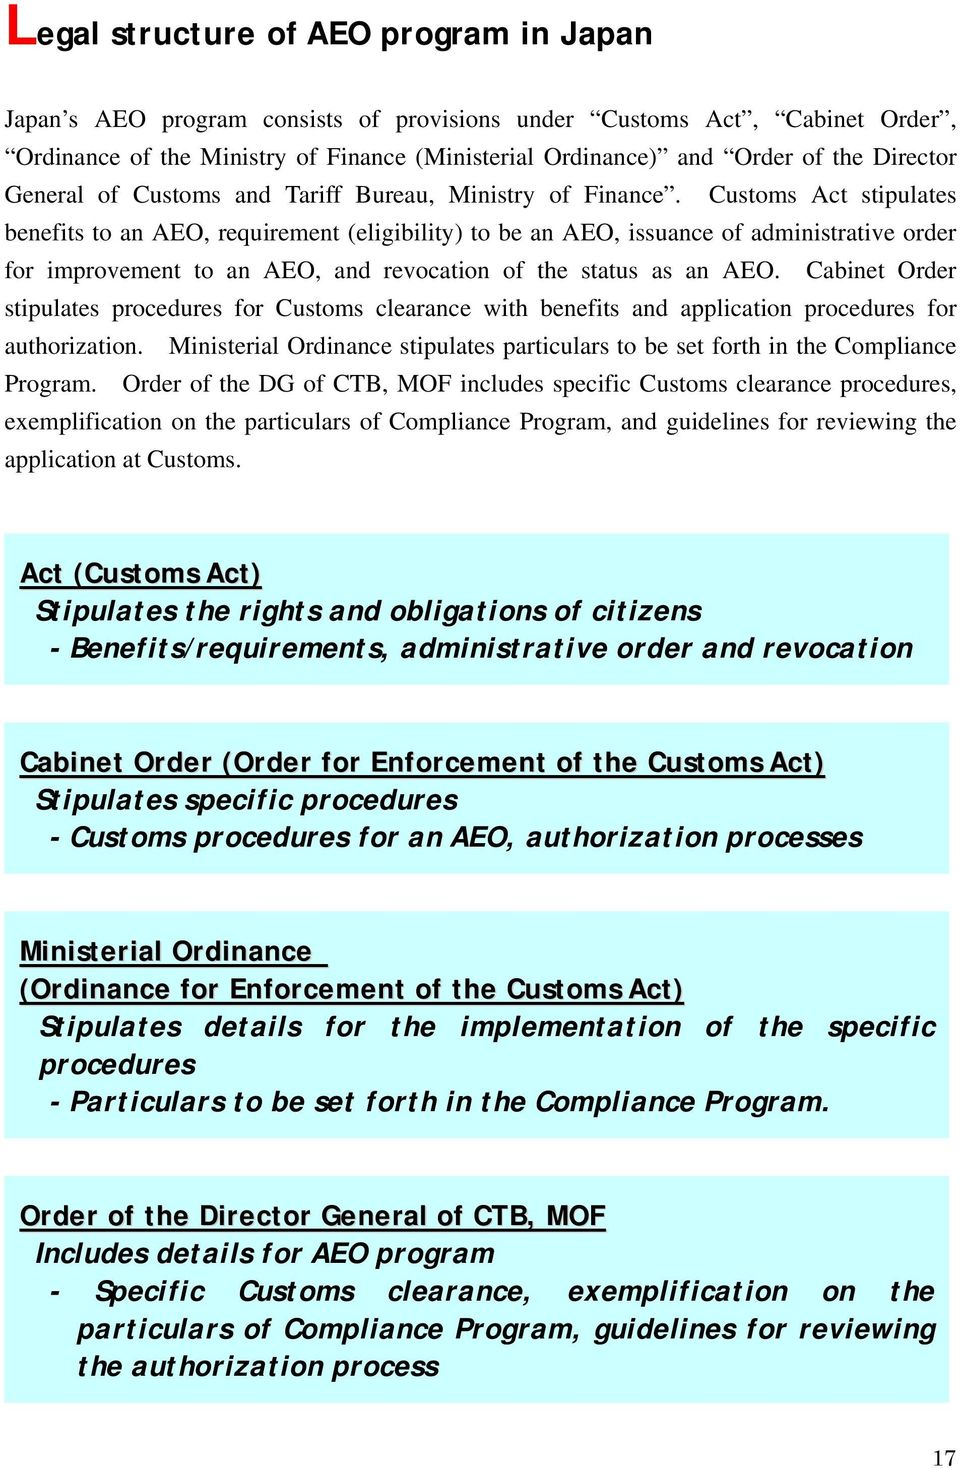 Customs Act stipulates benefits to an AEO, requirement (eligibility) to be an AEO, issuance of administrative order for improvement to an AEO, and revocation of the status as an AEO.